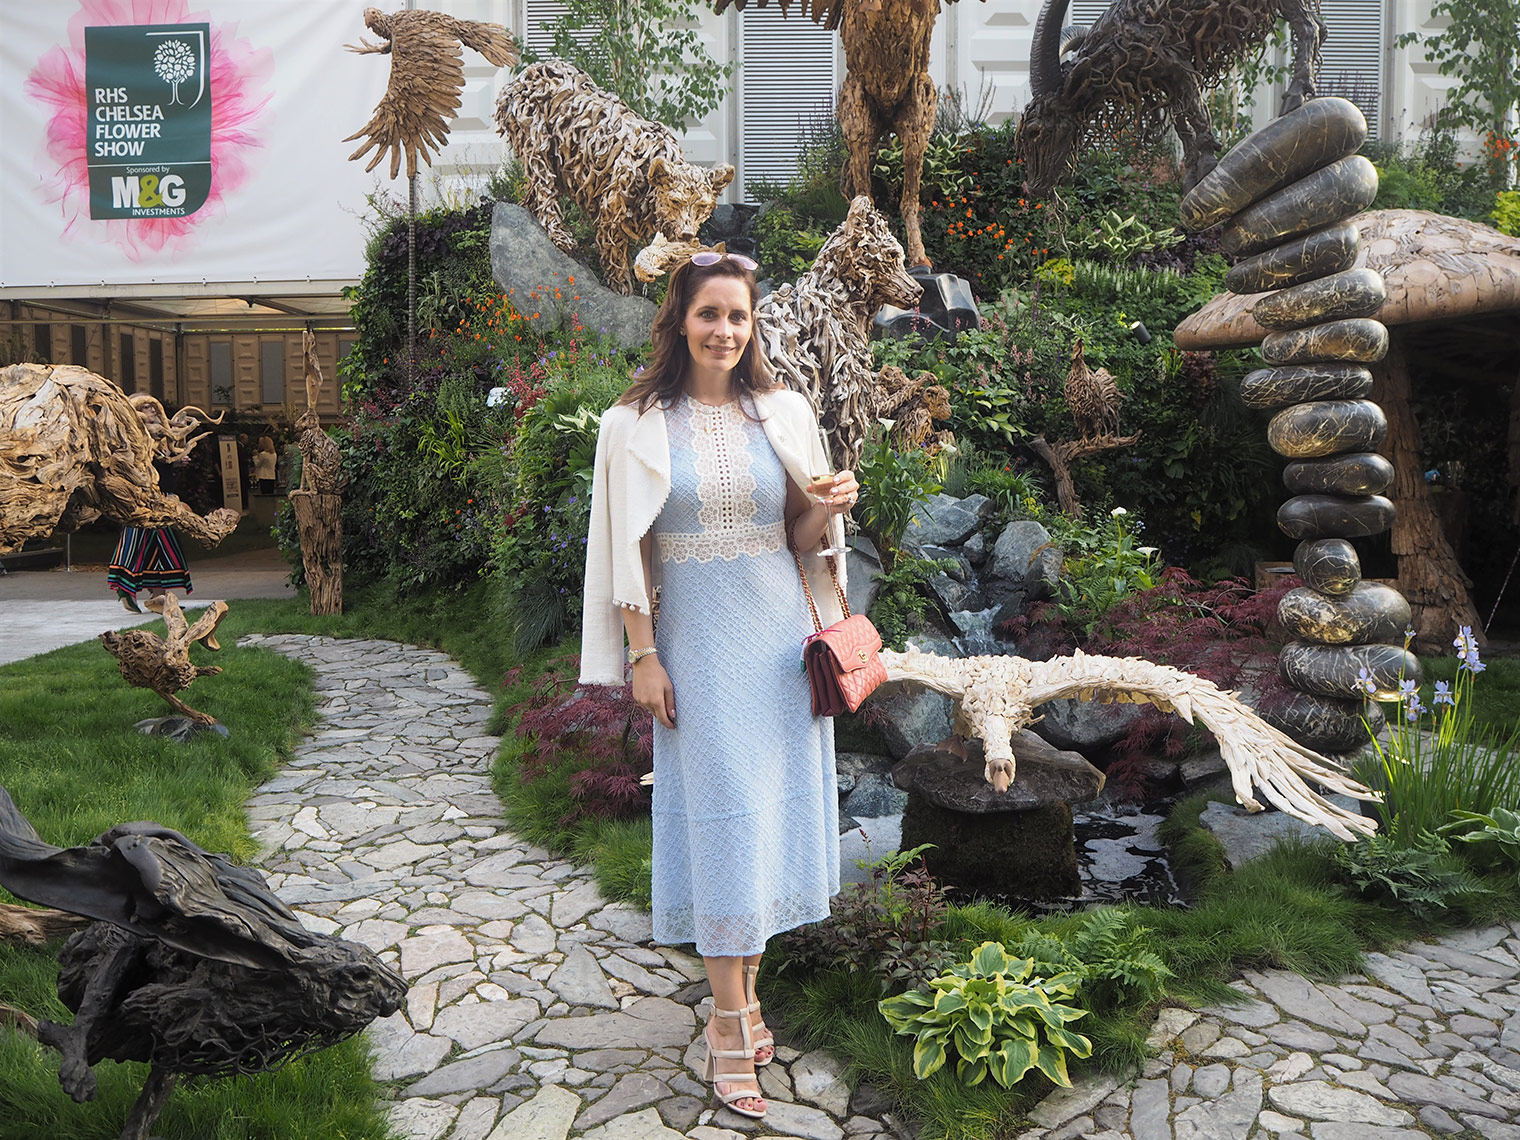 Petra from Chic Journal blog at Chelsea flower show wearing Sandro dress